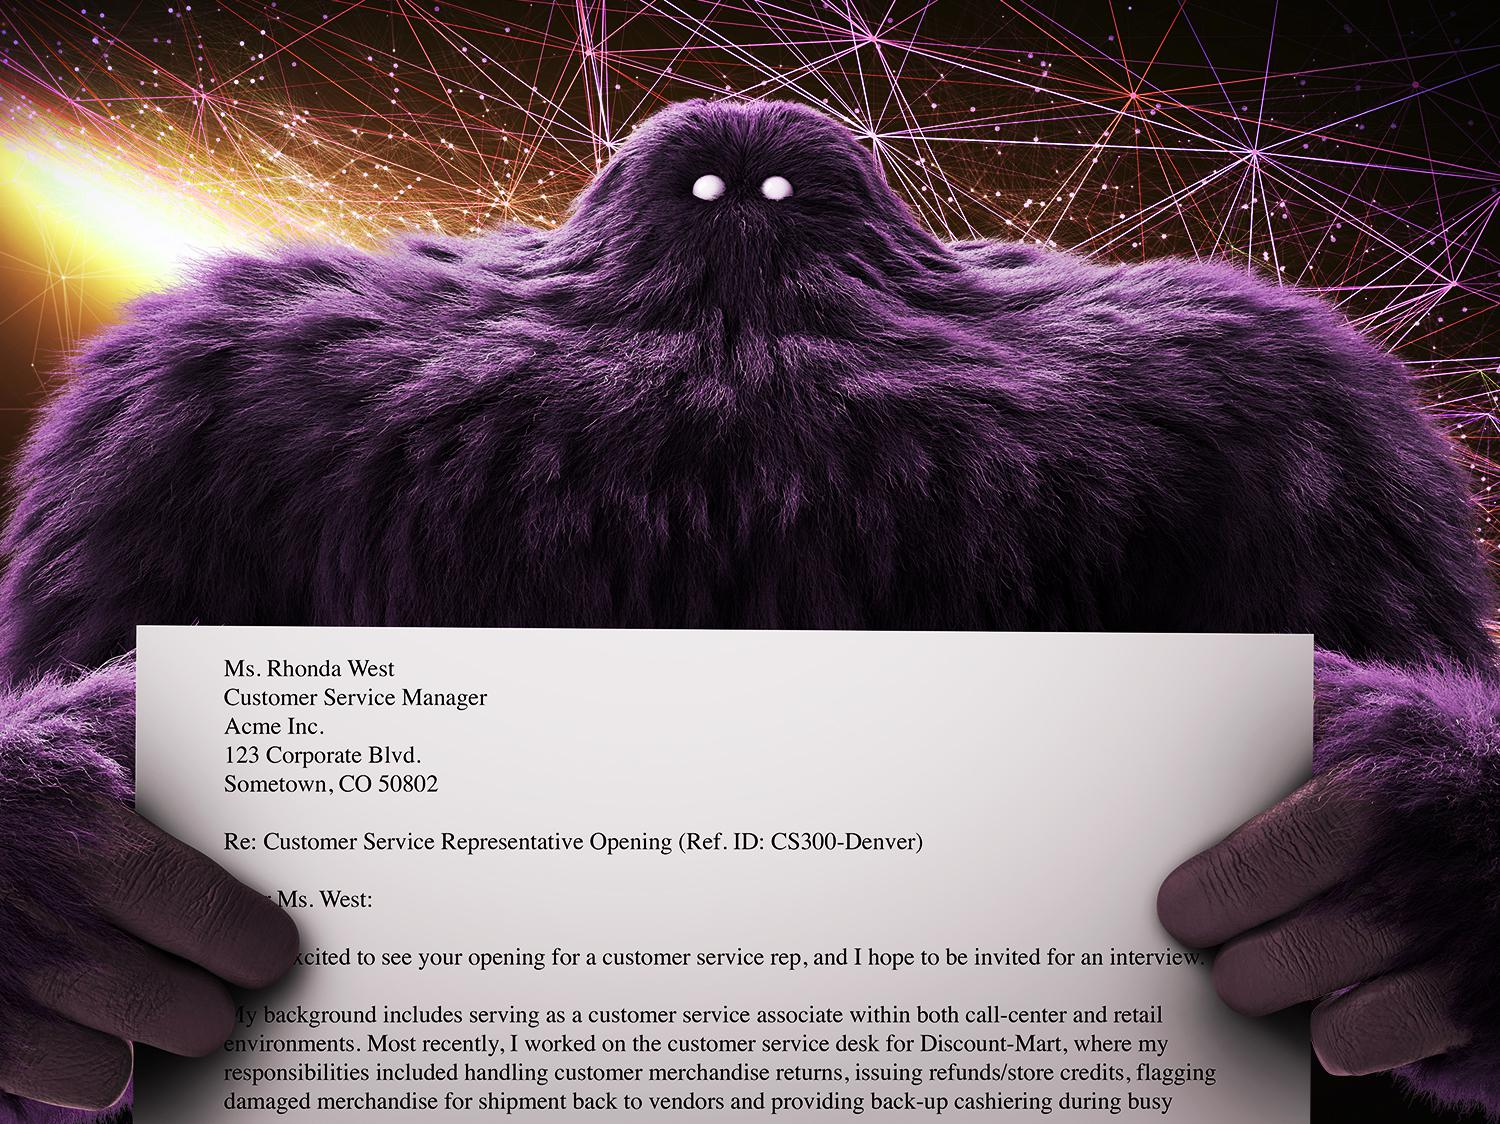 Cover Letter Format   Sample   Monster com Smart tips to help you format and write a cover letter